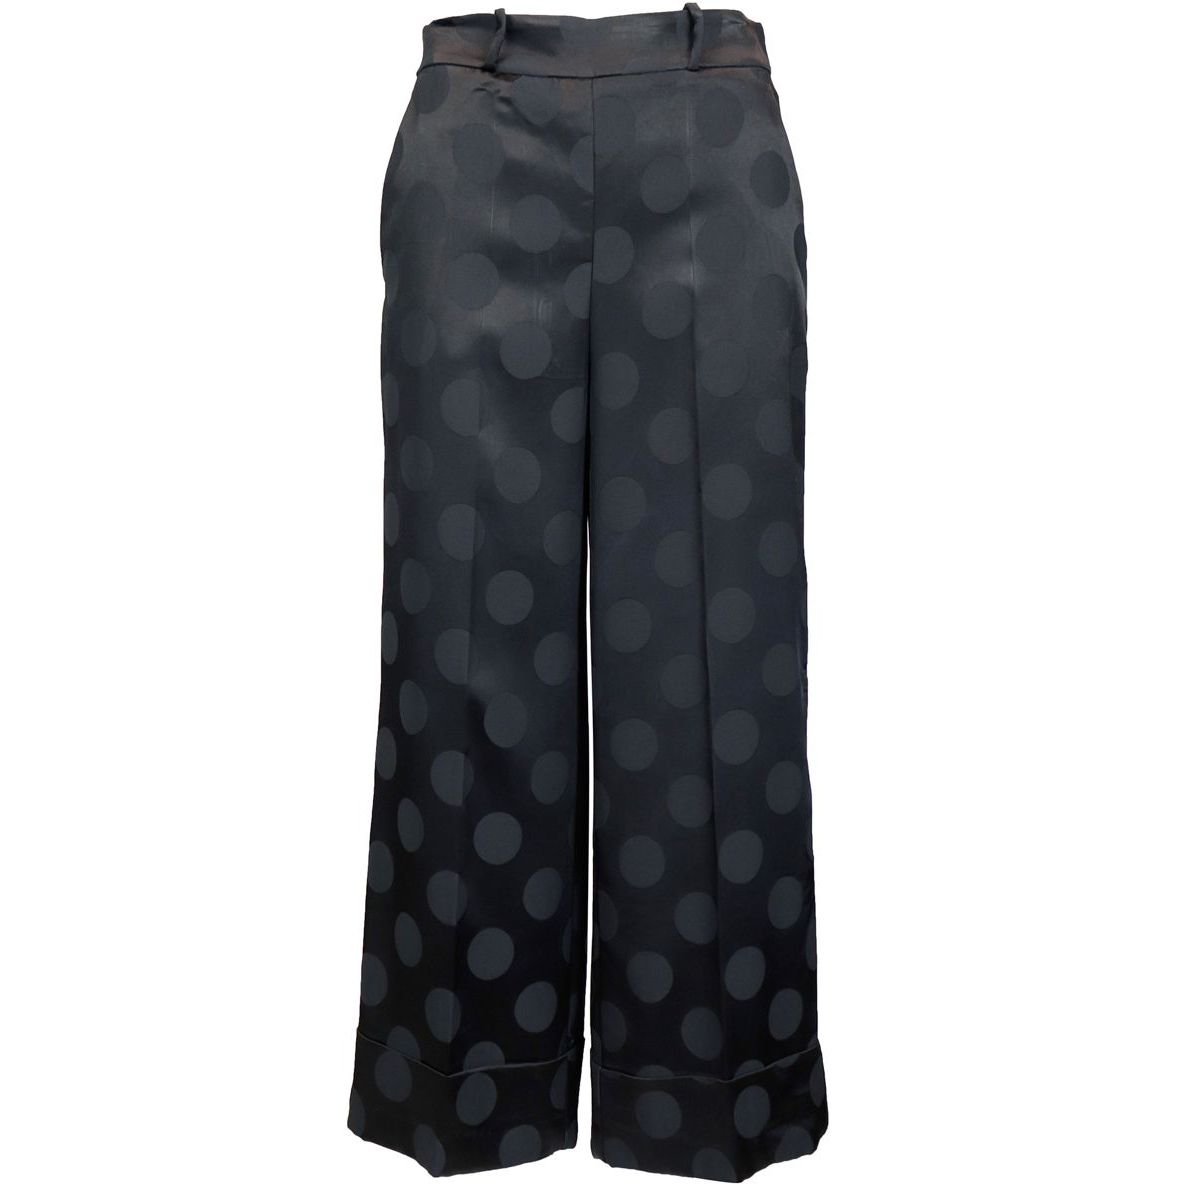 Shiny trousers with tone on tone polka dots Black Maliparmi